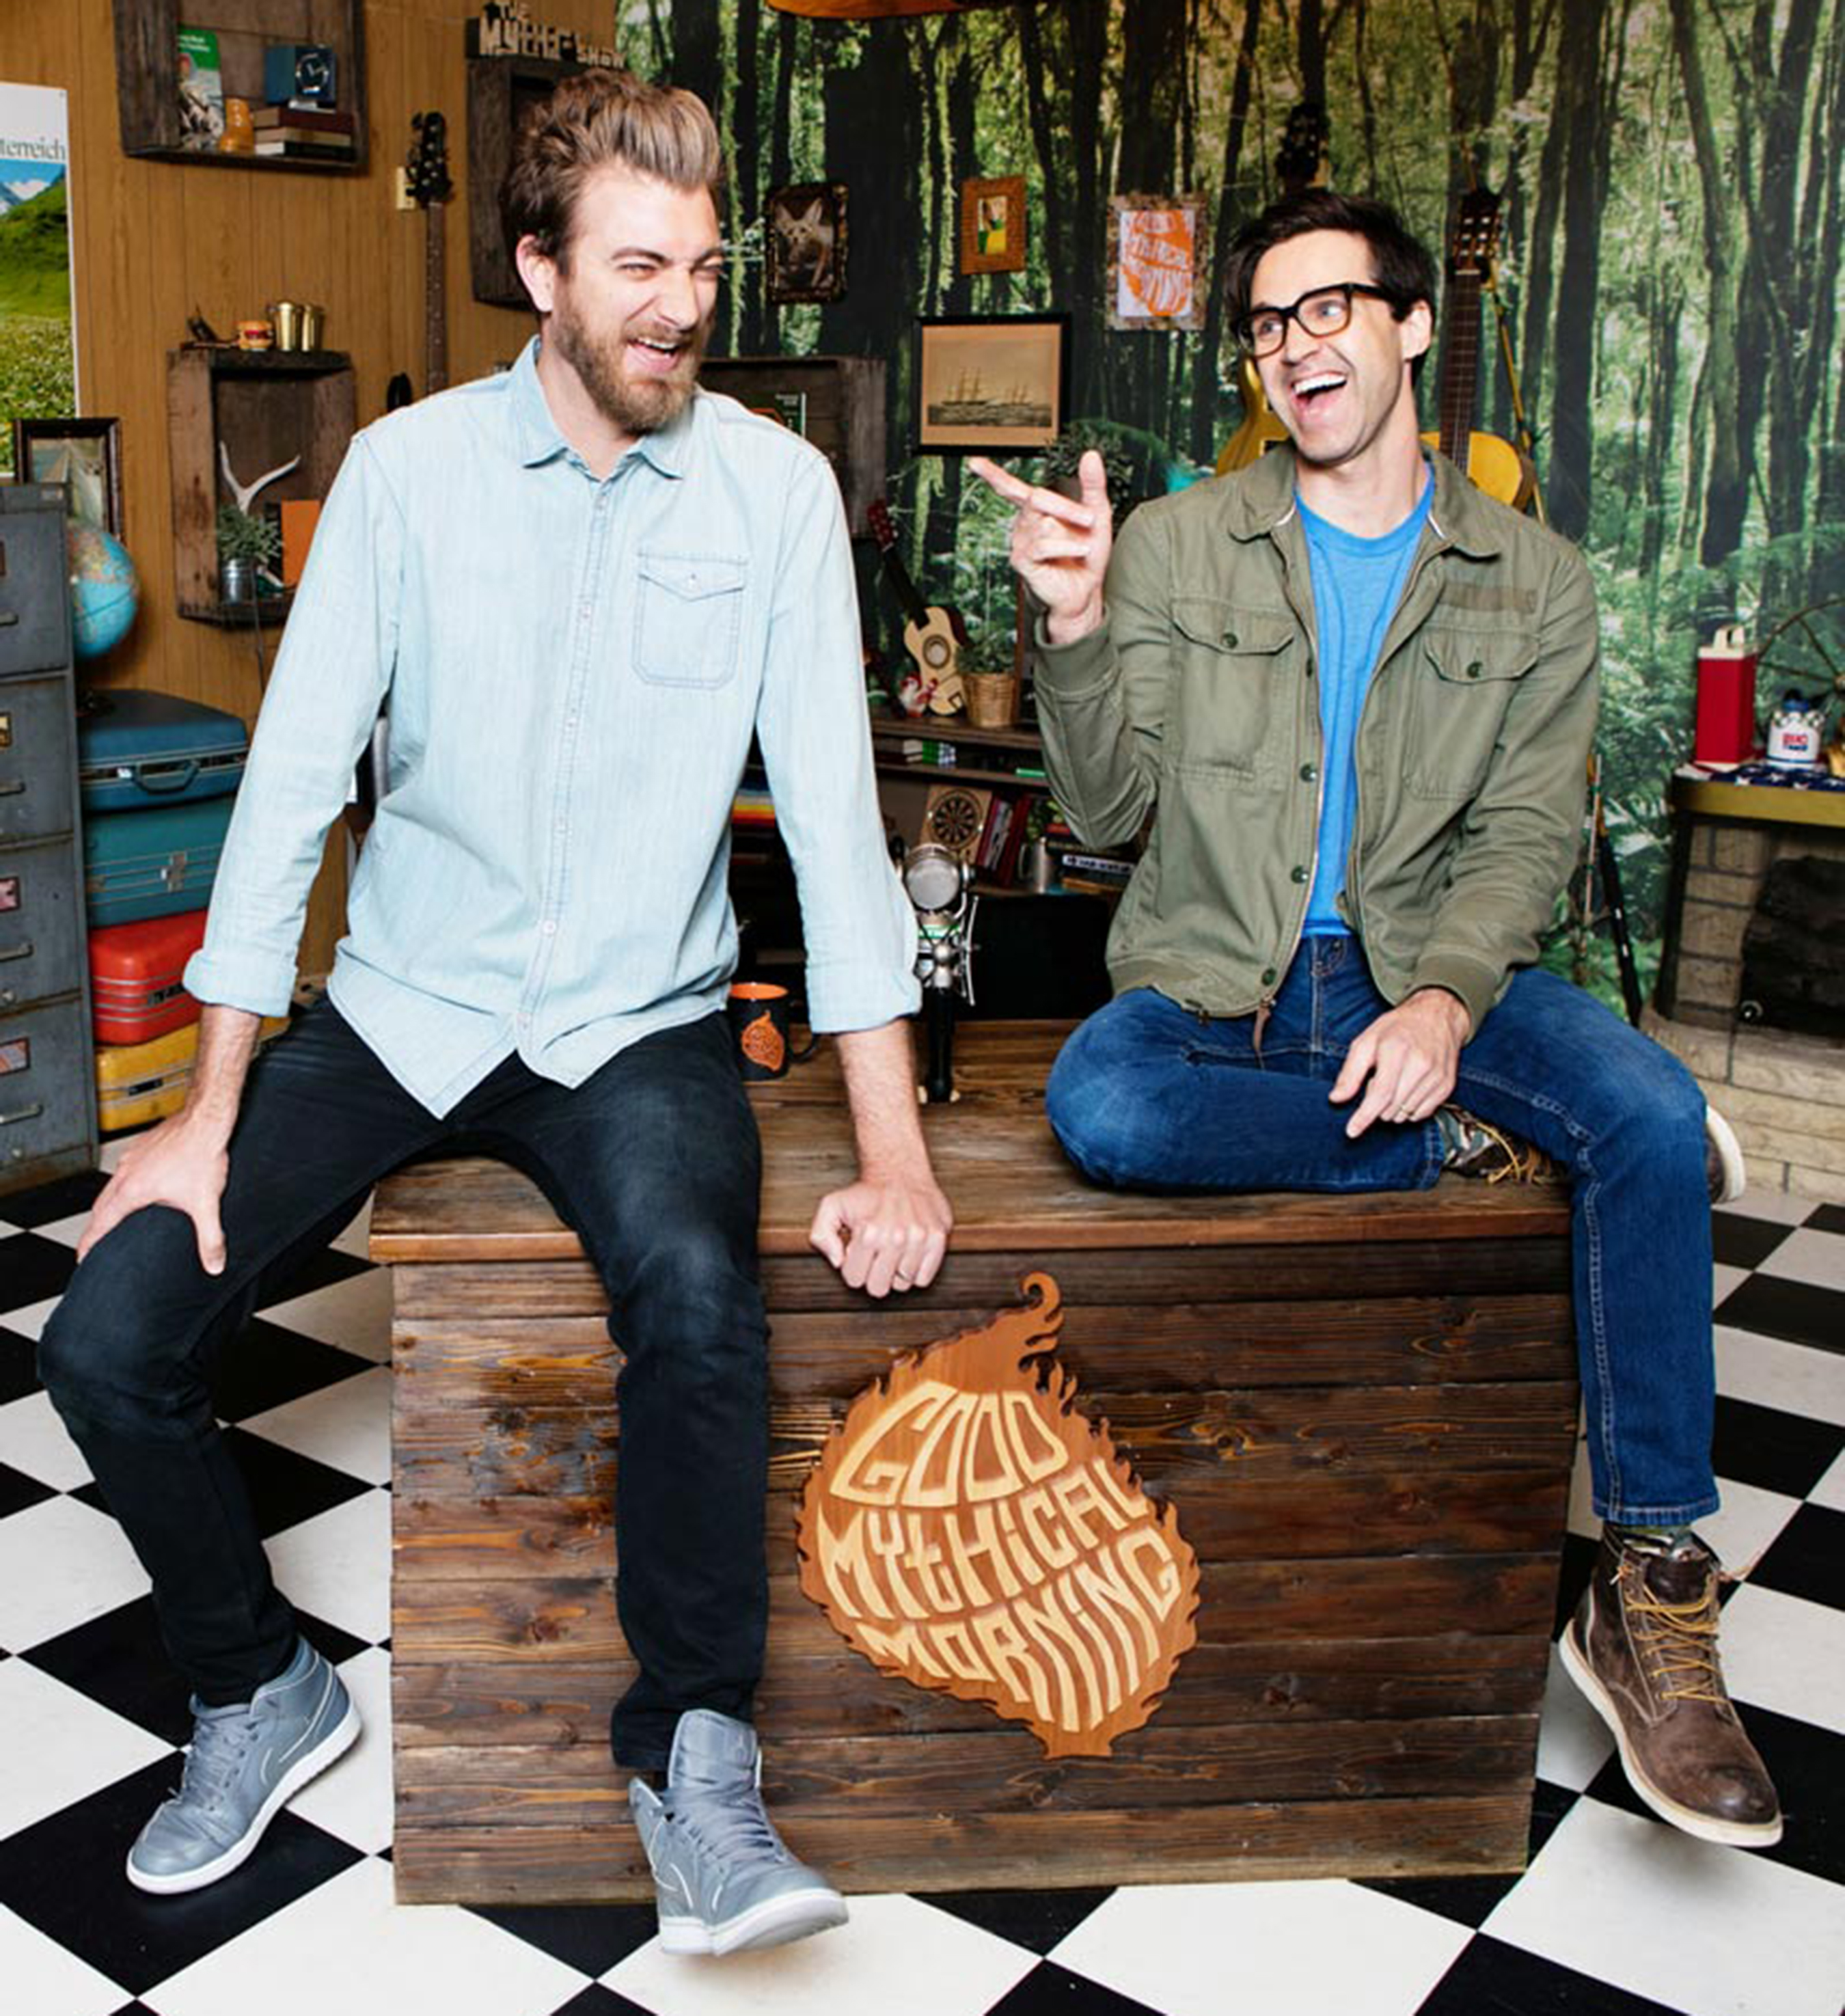 how old are rhett and links kids